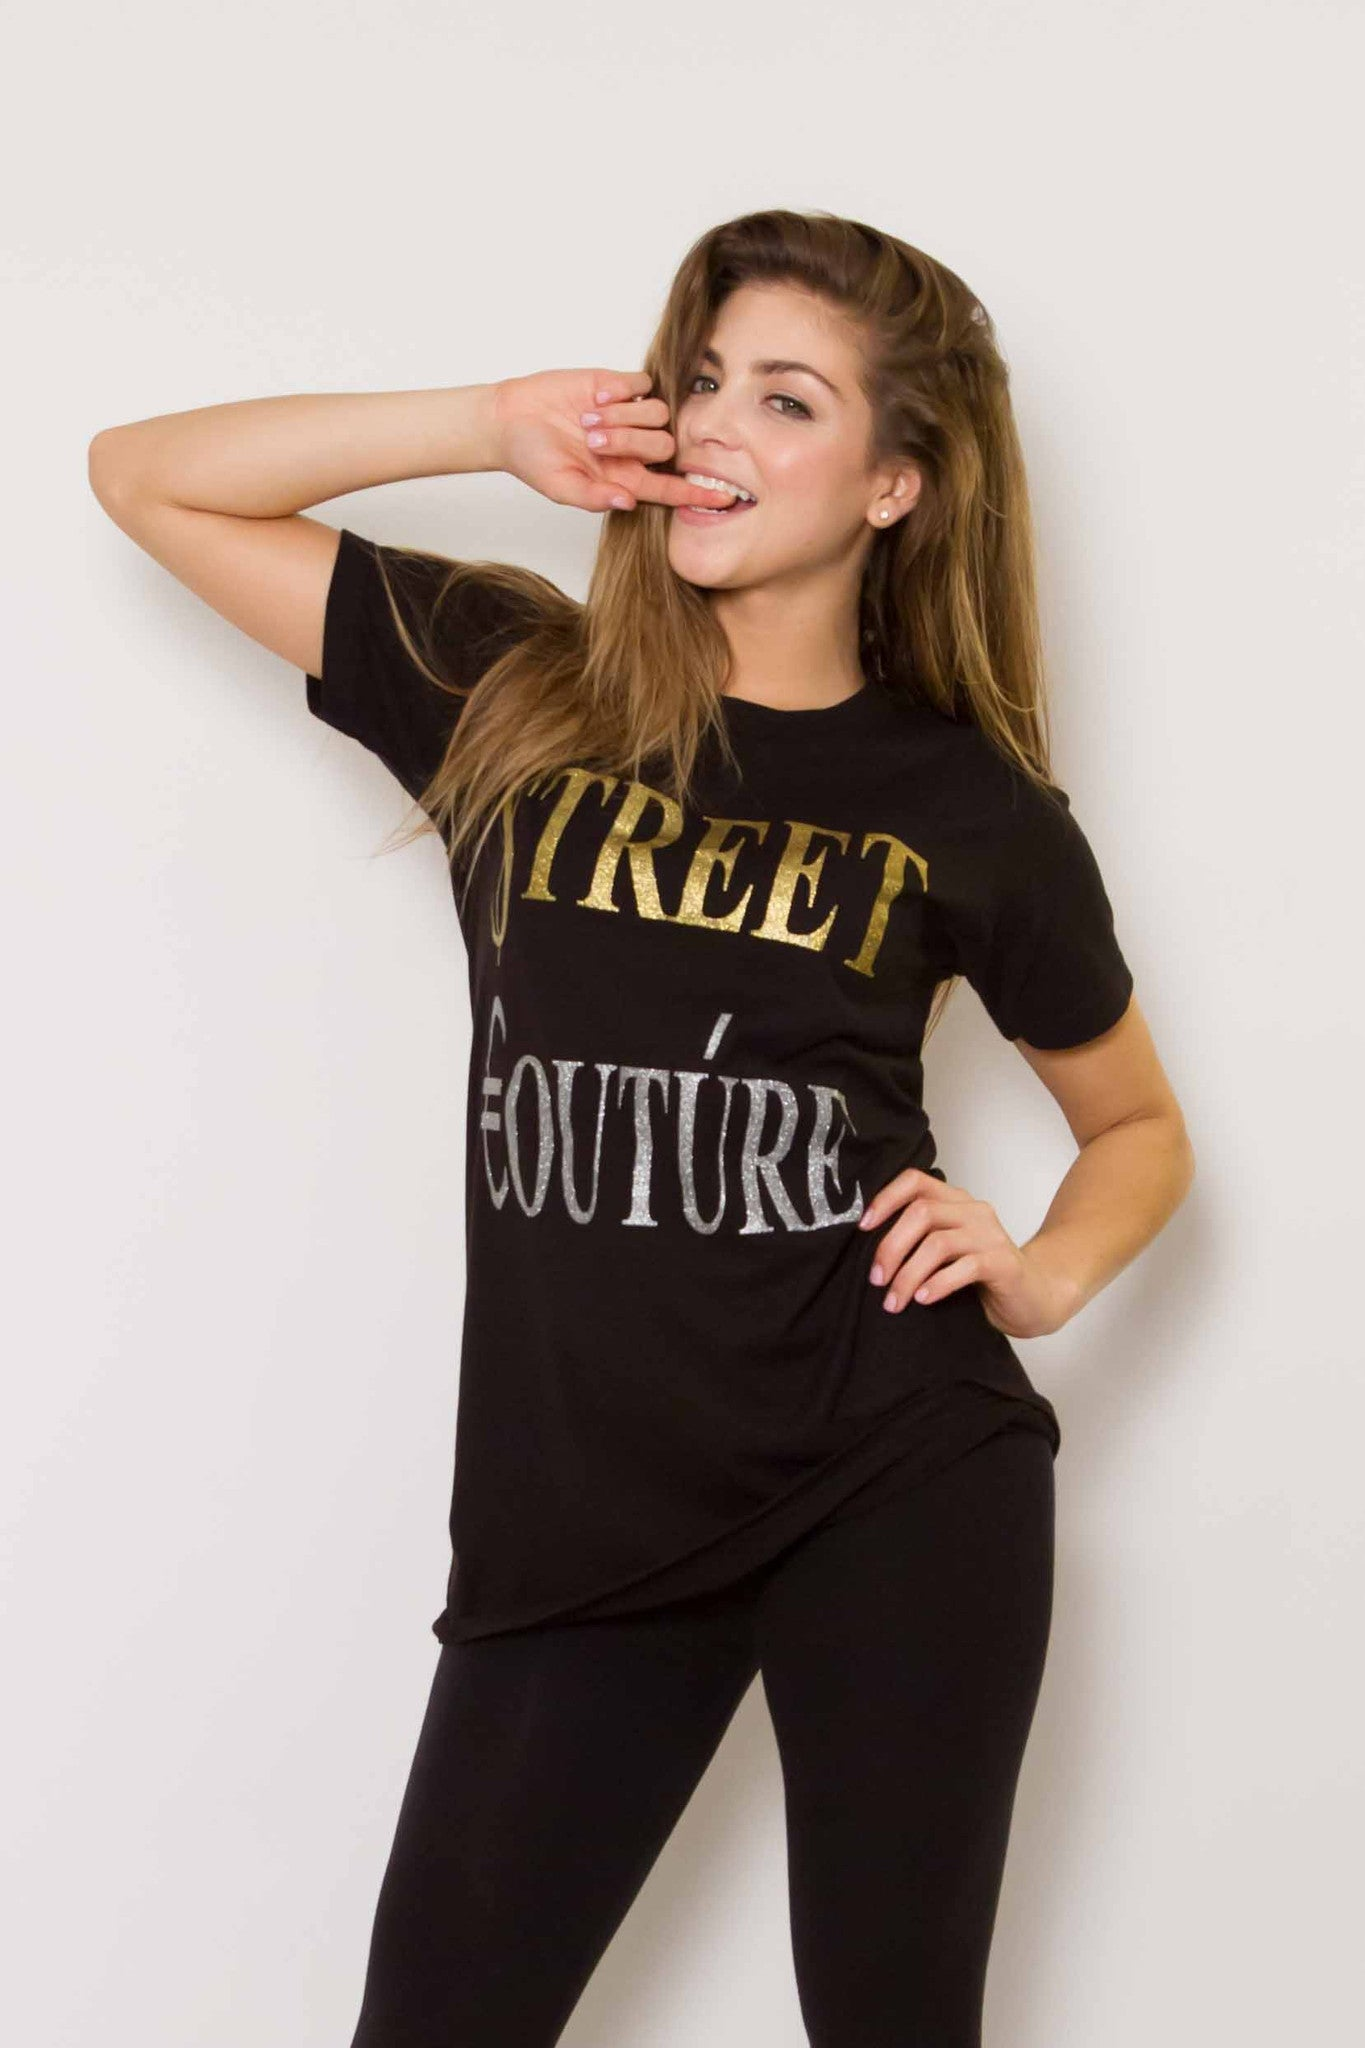 Street Coutúre Shine Bright T-Shirt